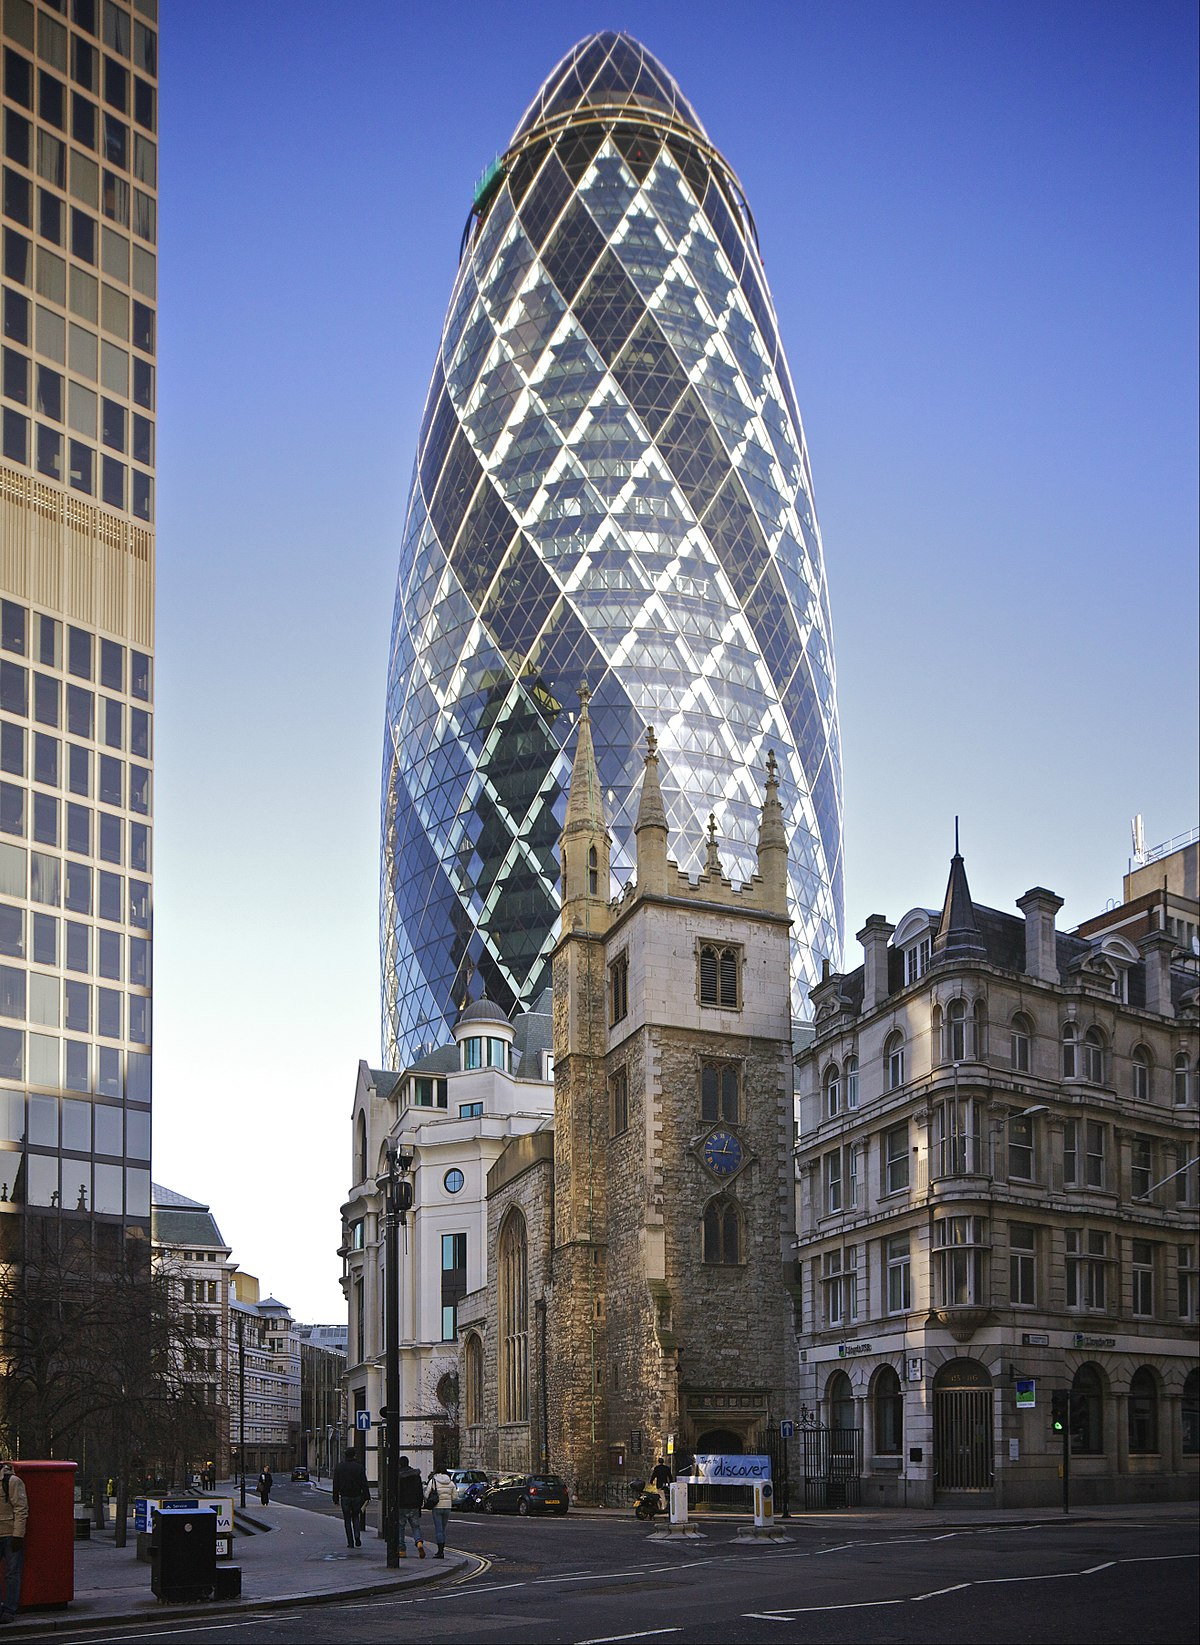 30 st mary axe wikipedia for Architecture londres